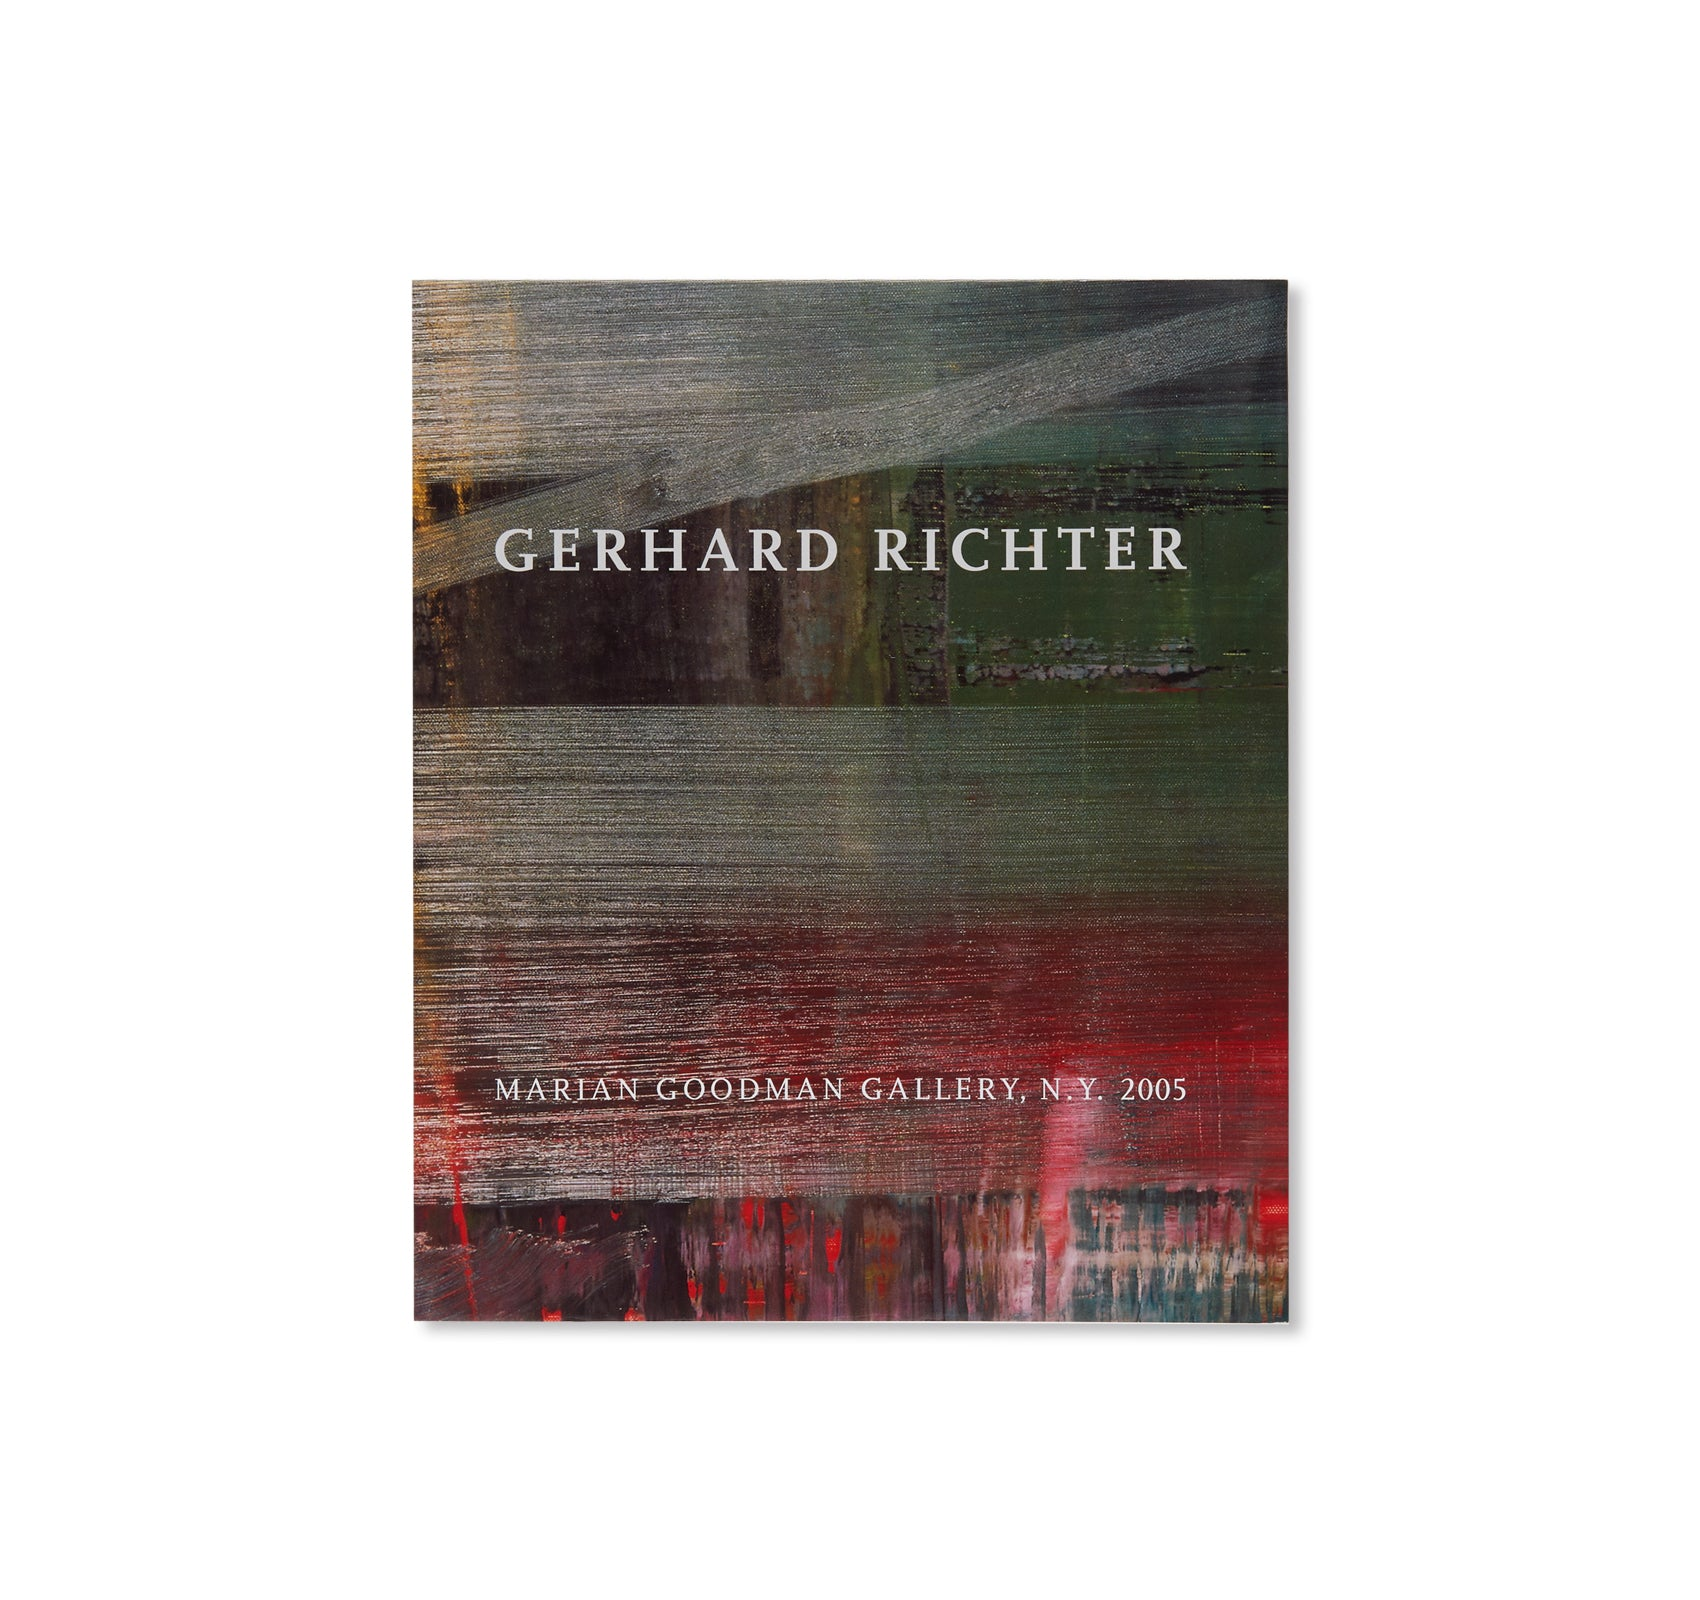 2005 by Gerhard Richter